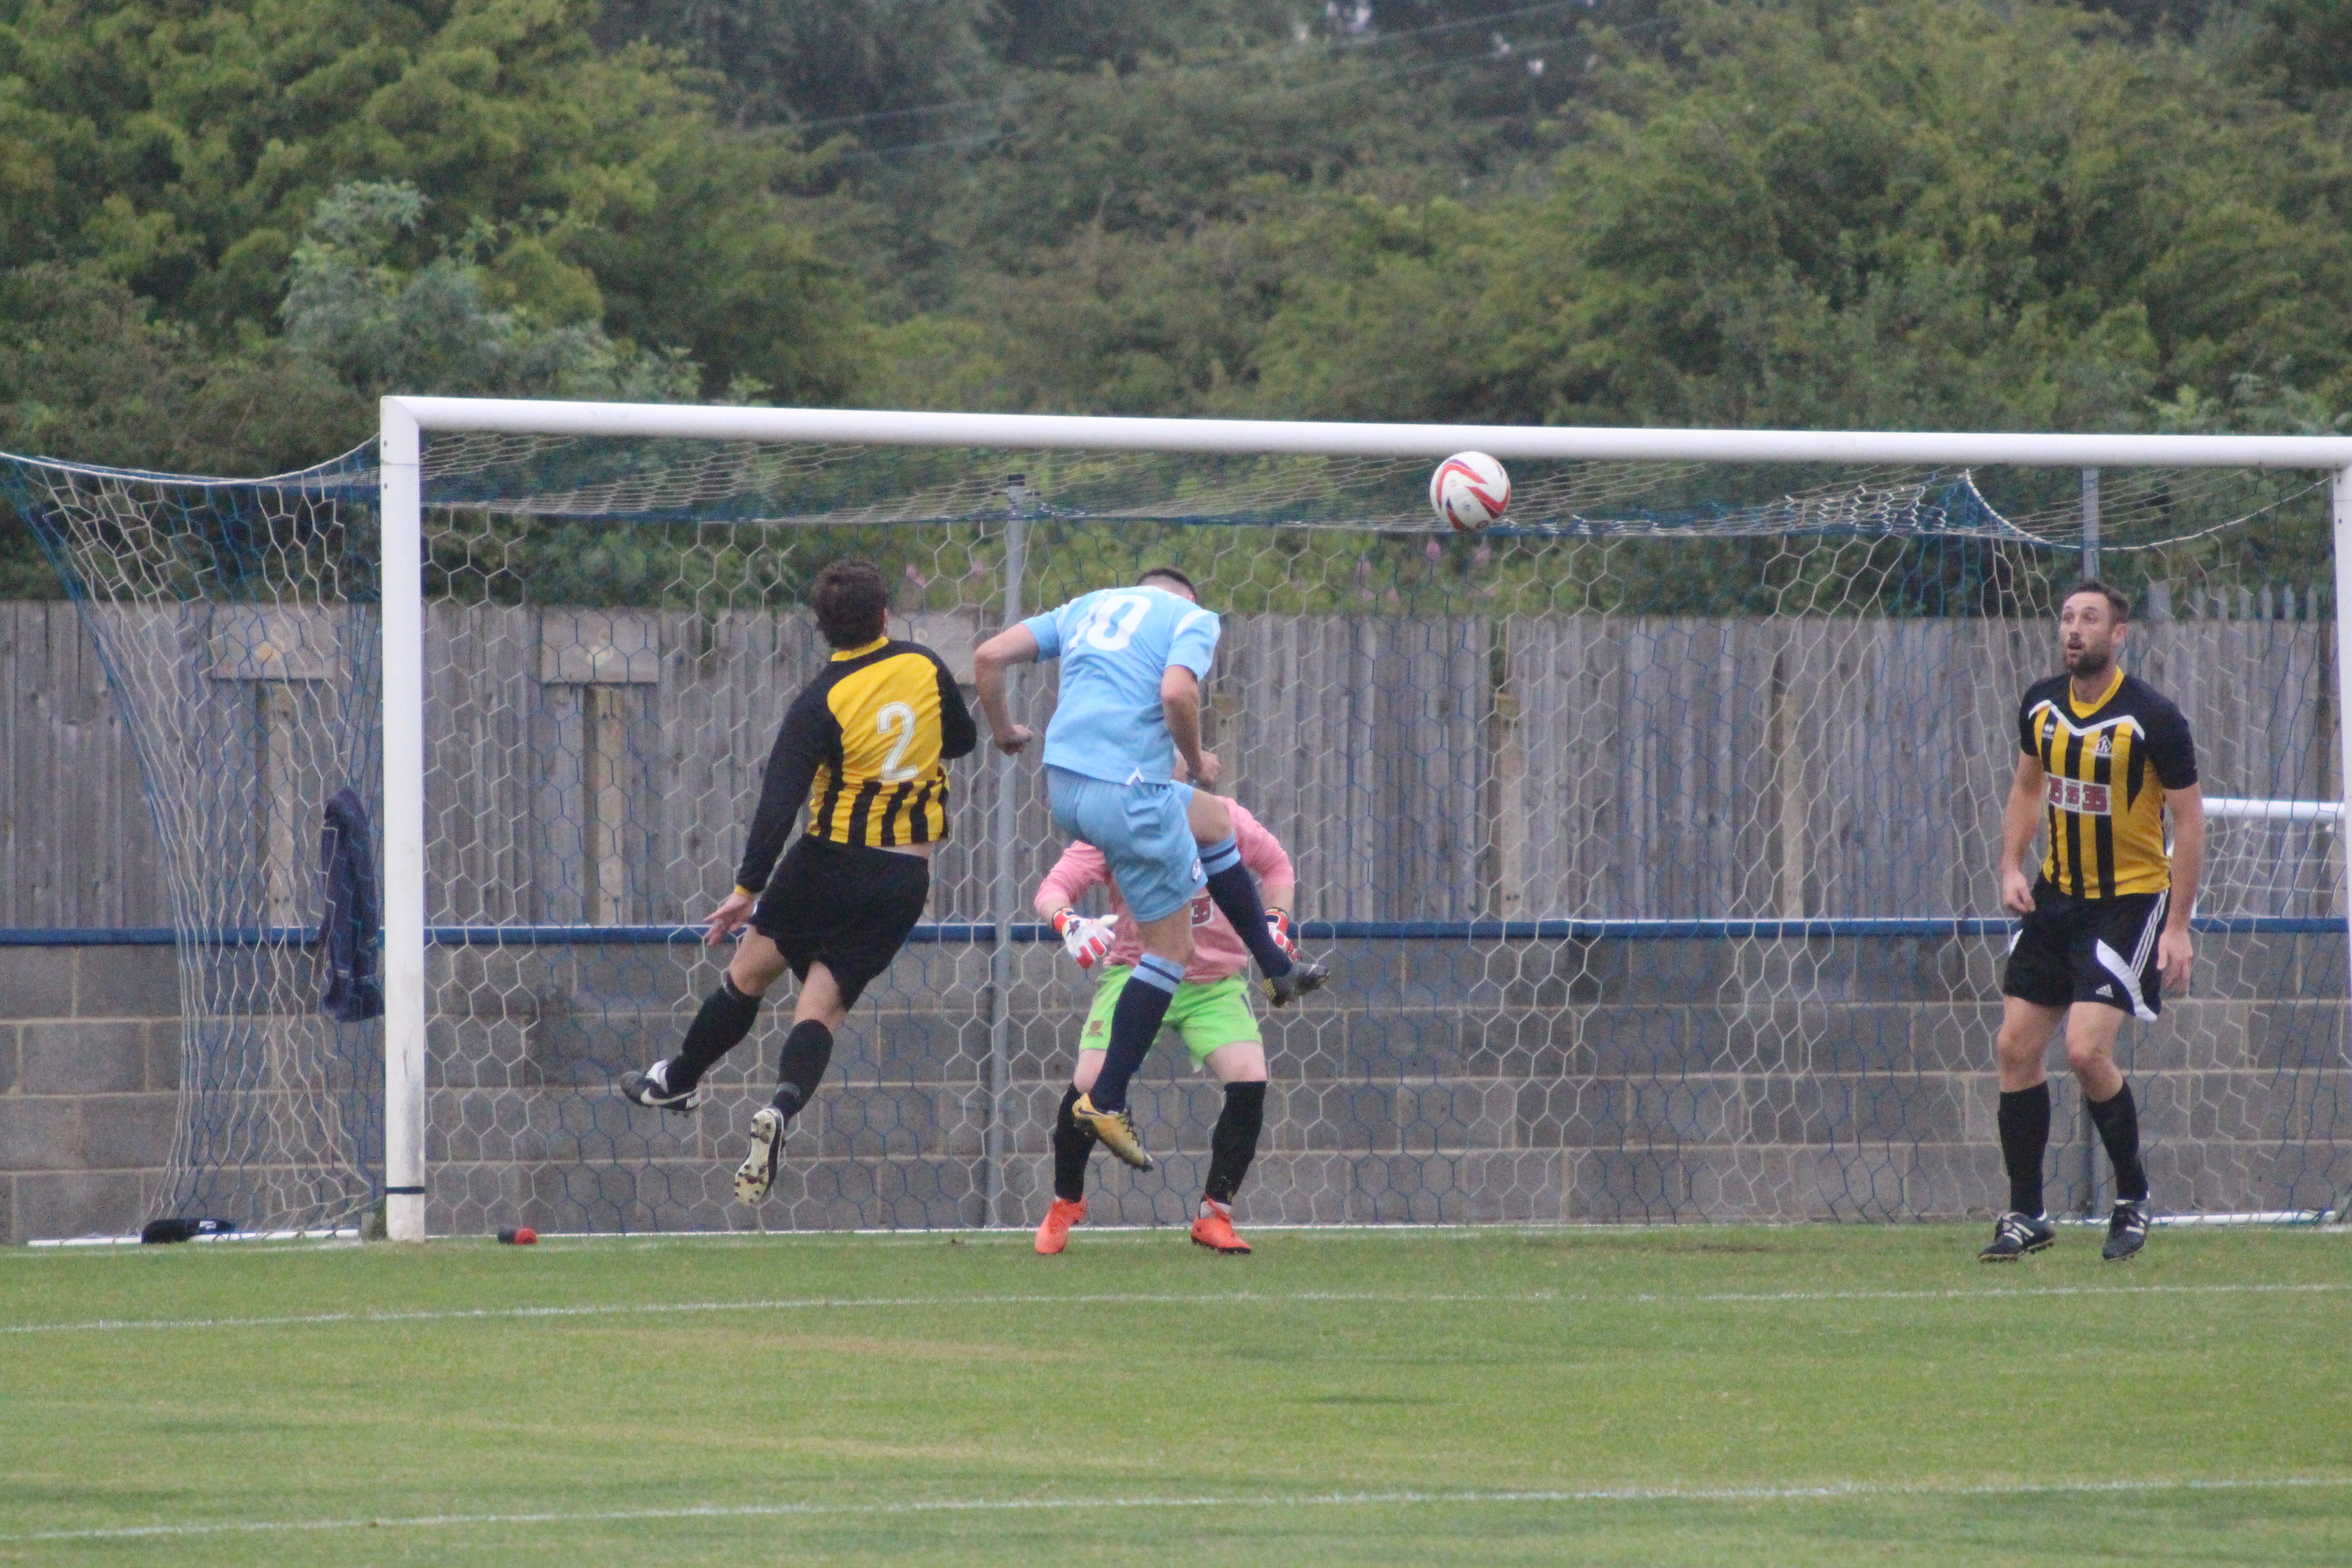 First Team 7-1 LIV Supplies – Two hat-tricks and a familiar face returns to pitch